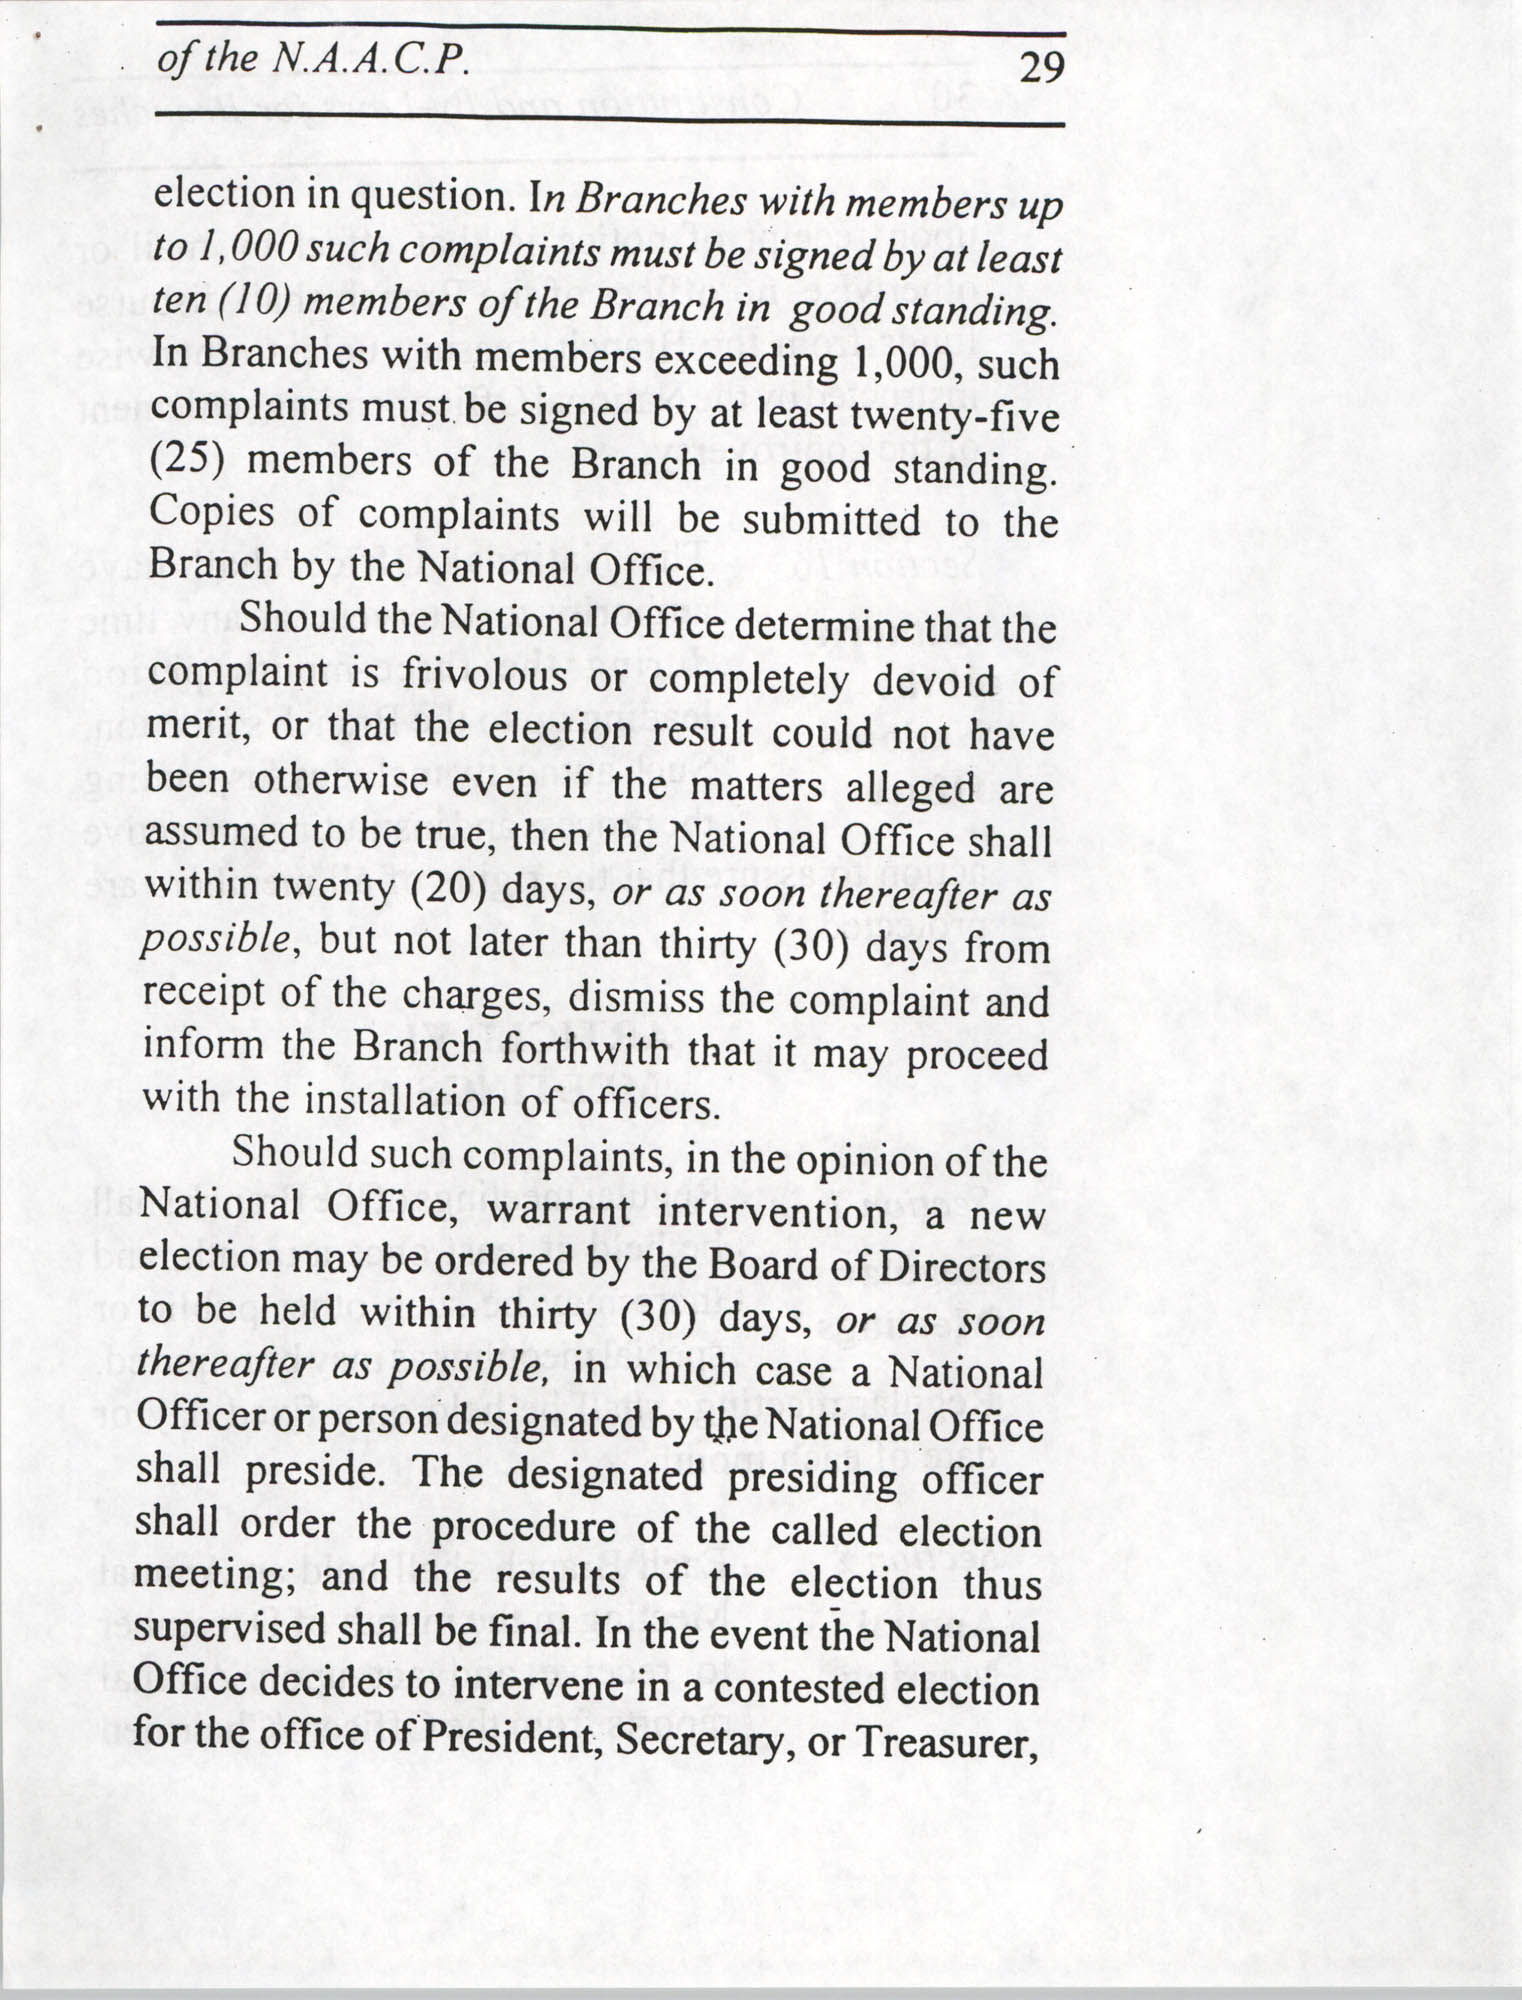 Constitution and By-Laws for Branches of the NAACP, July 1994, Page 29